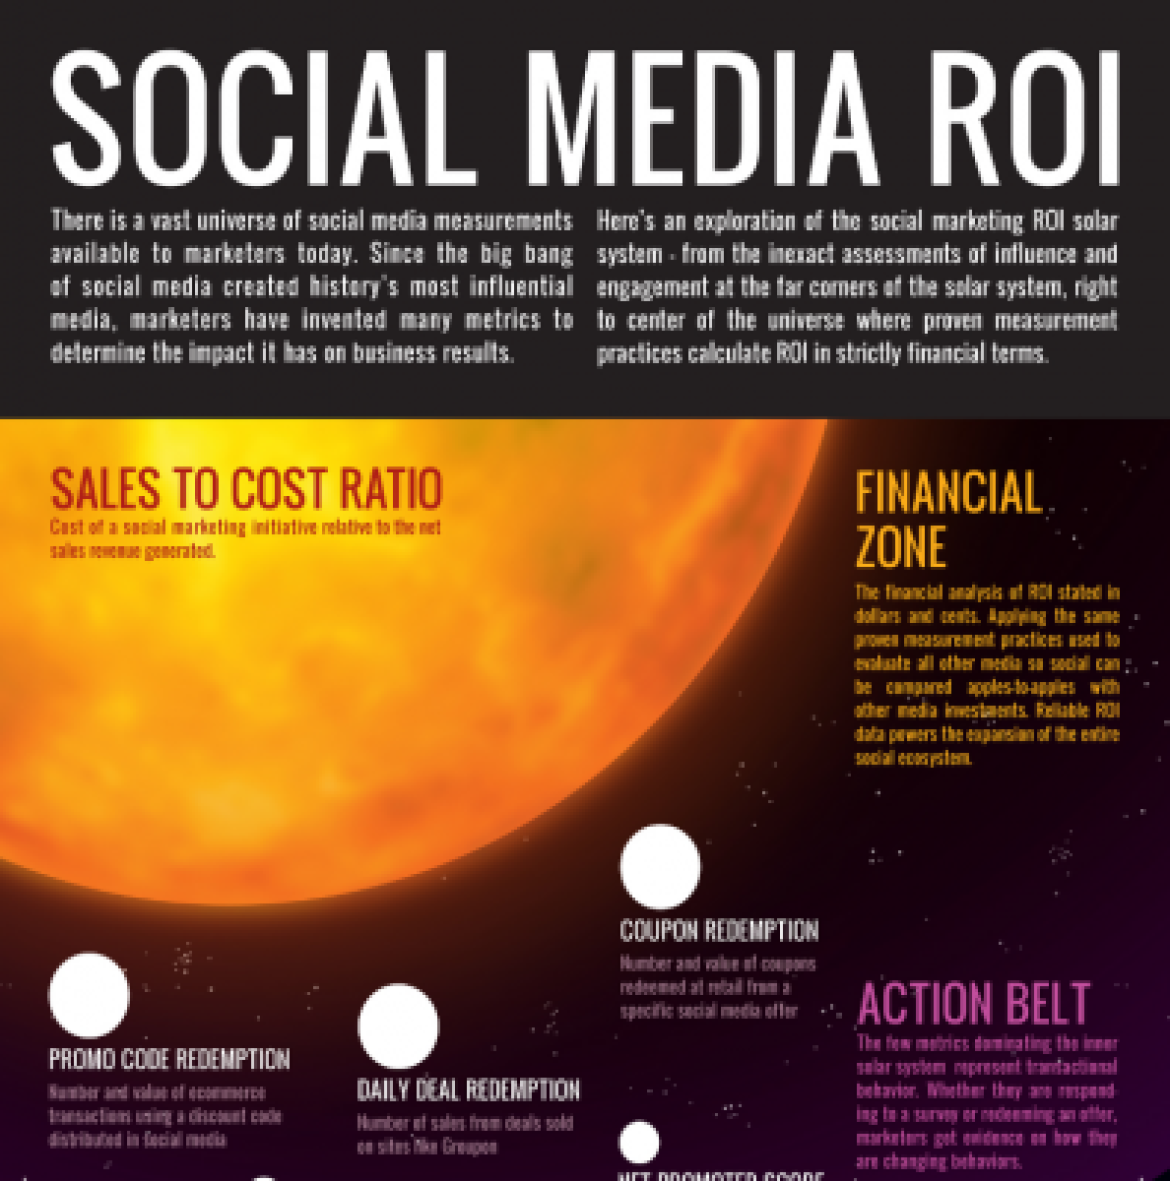 How to Calculate Social Media ROI